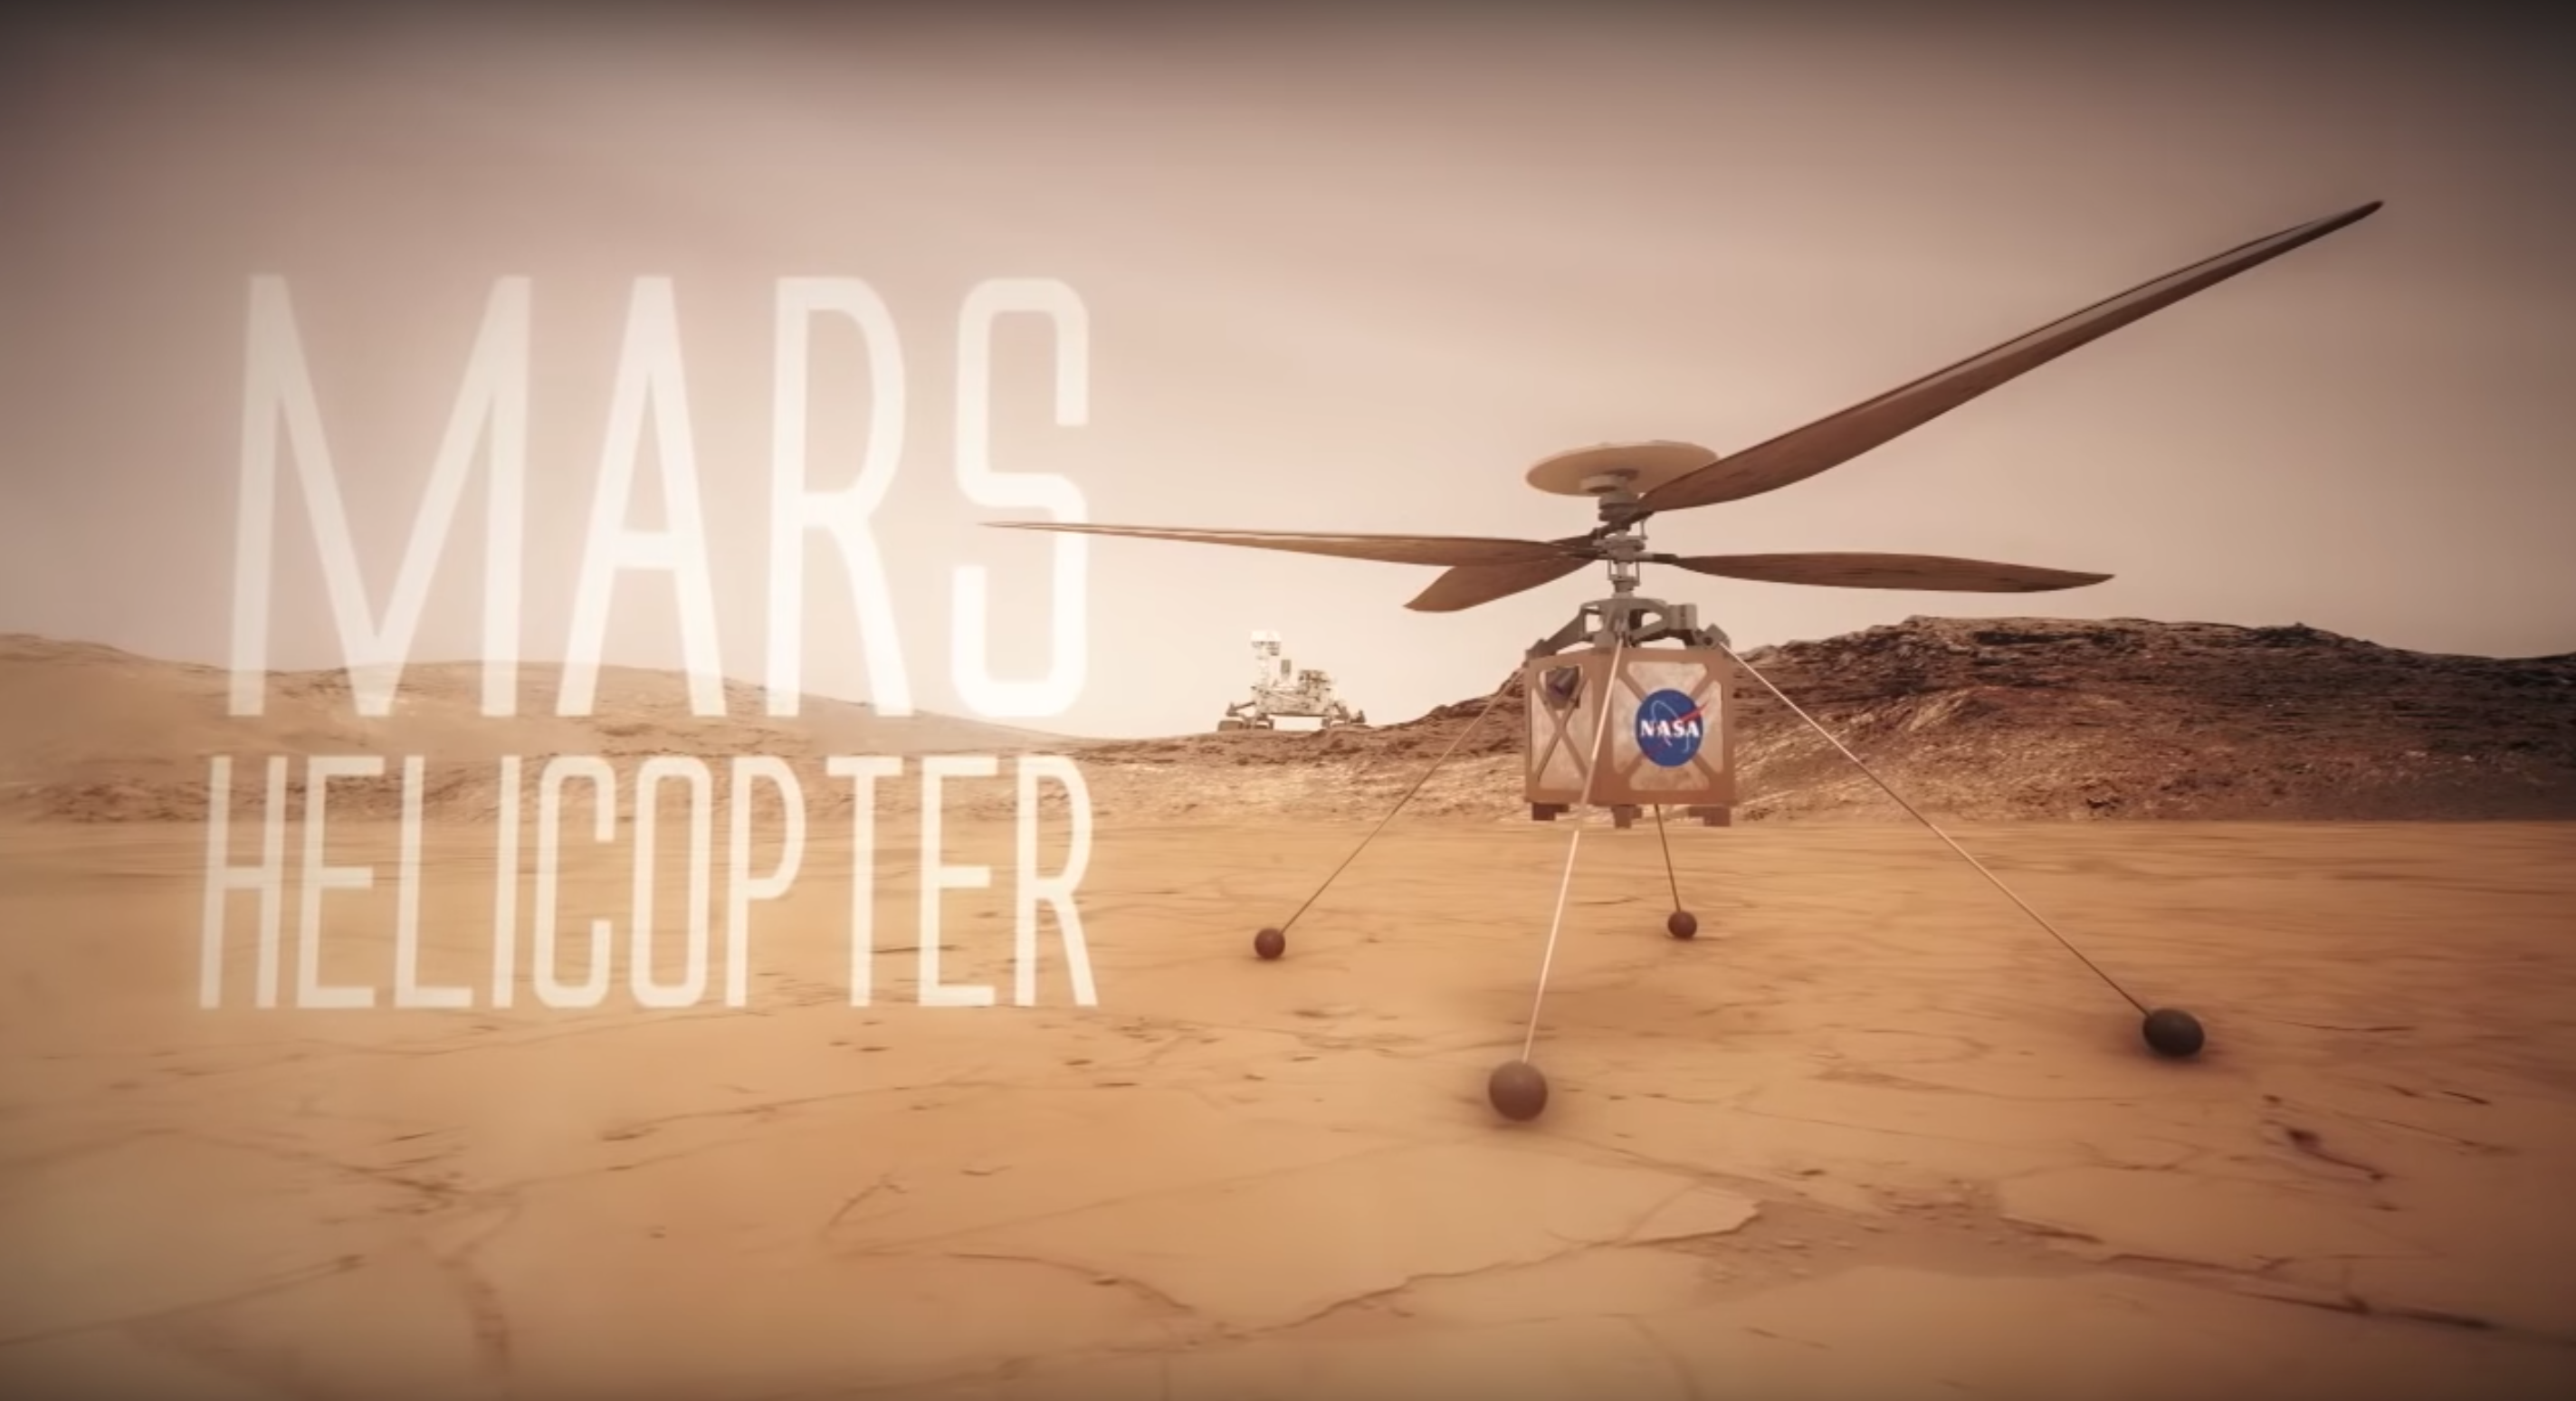 martian helicopters human colonies and drilling for - HD1614×957